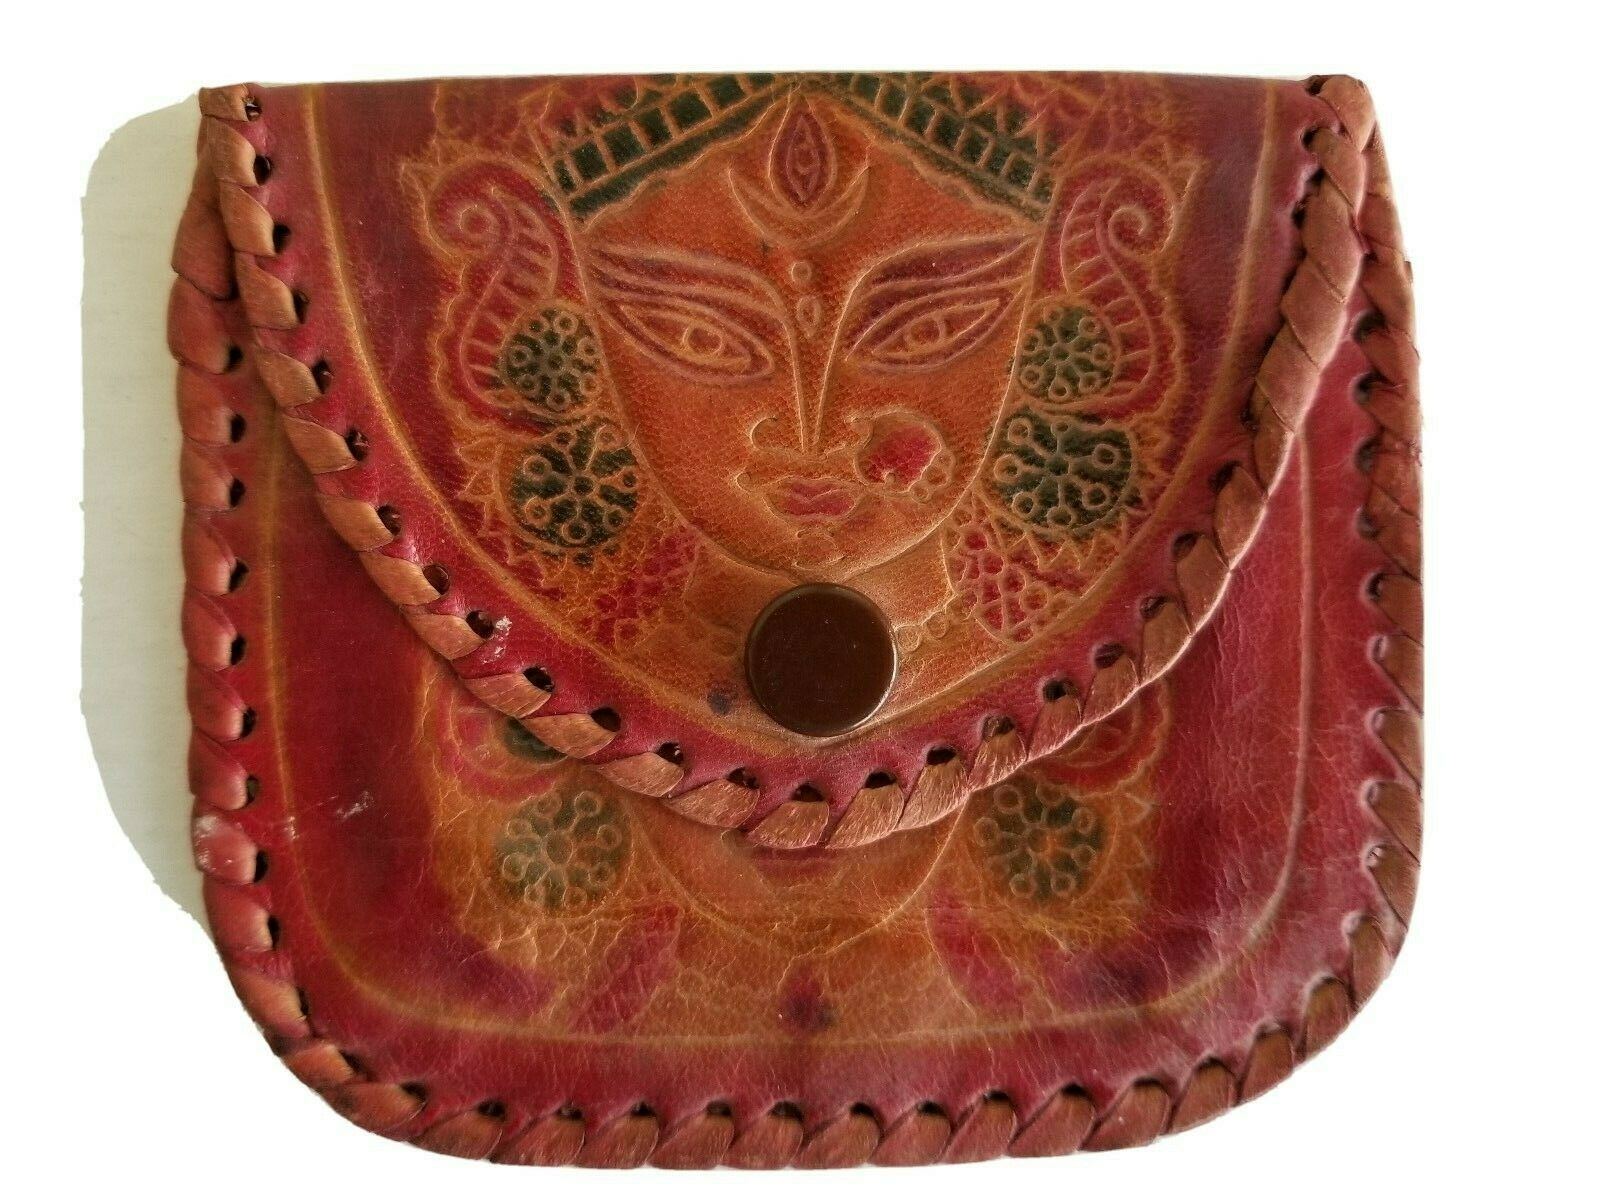 Leather Coin Purse Wallet with Embossed Indian or Egyptian Woman Made in India